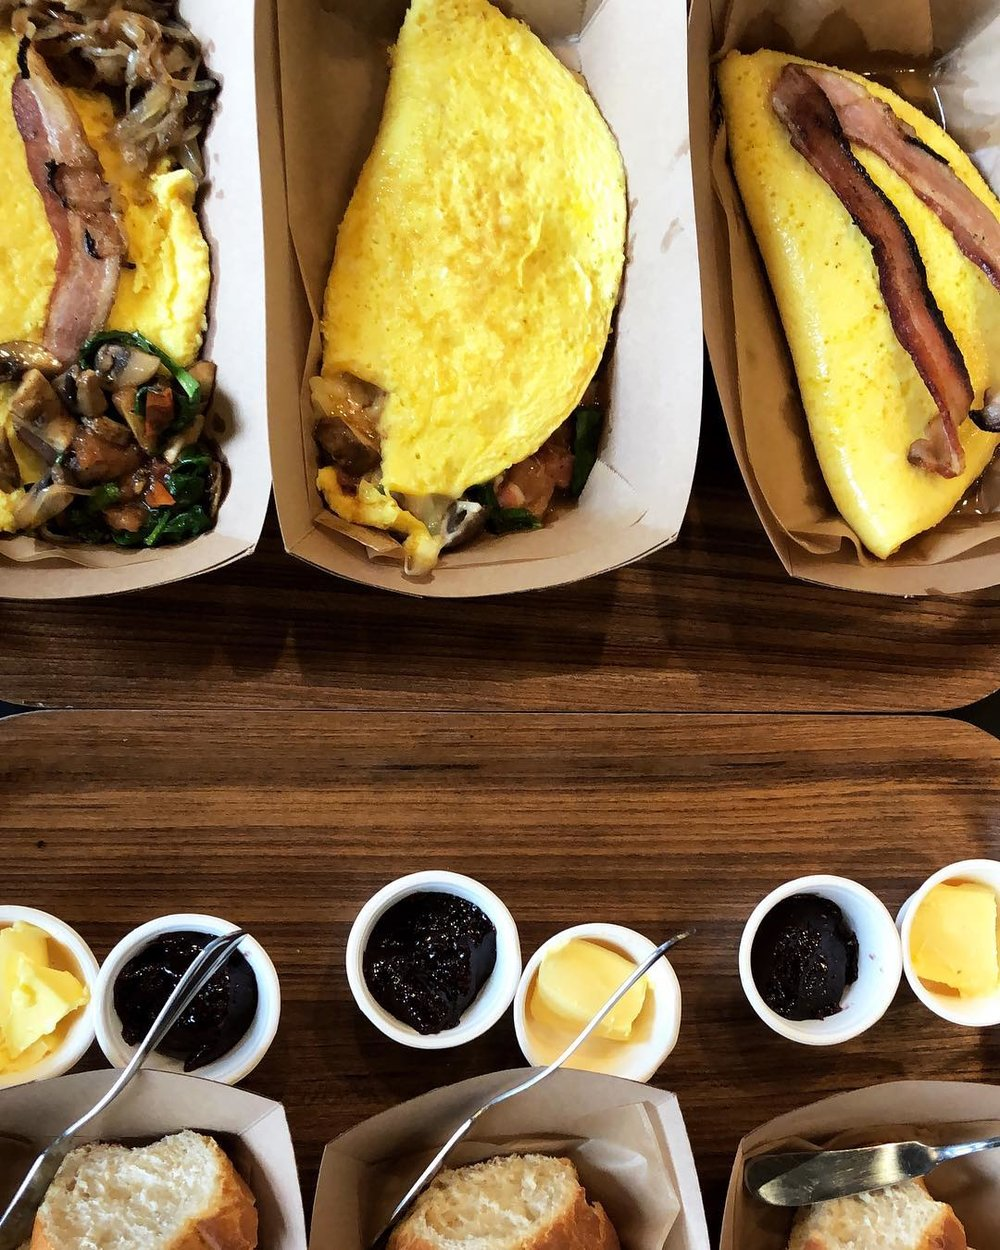 Organic, pasture-raised egg omelettes and rustic bread